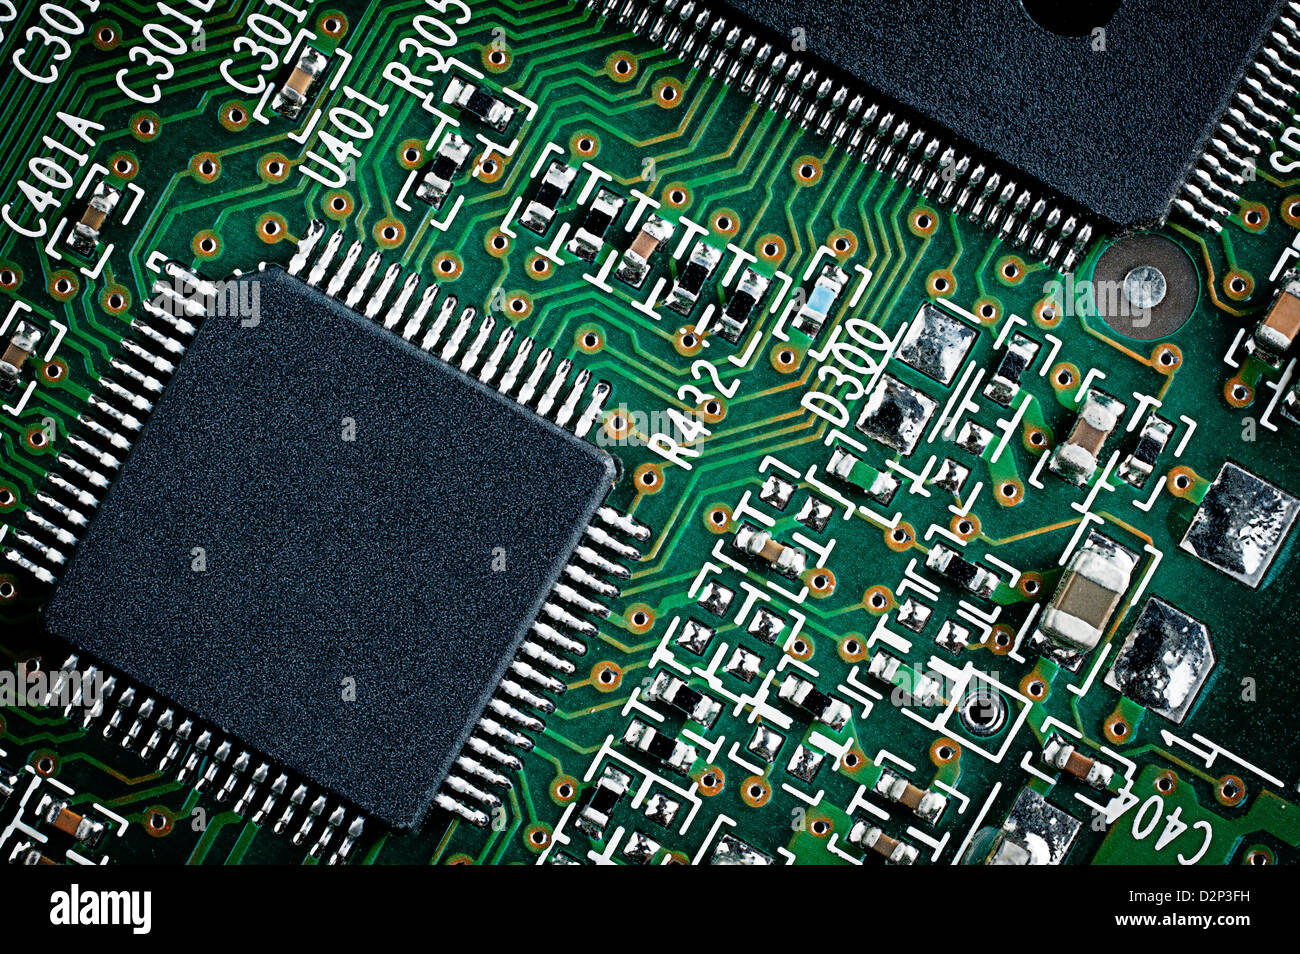 Printed Circuit Board Green Electronic Stock Photos Stockfoto Pcb Used In Industrial Microchip On Close Up Macro Detail Image